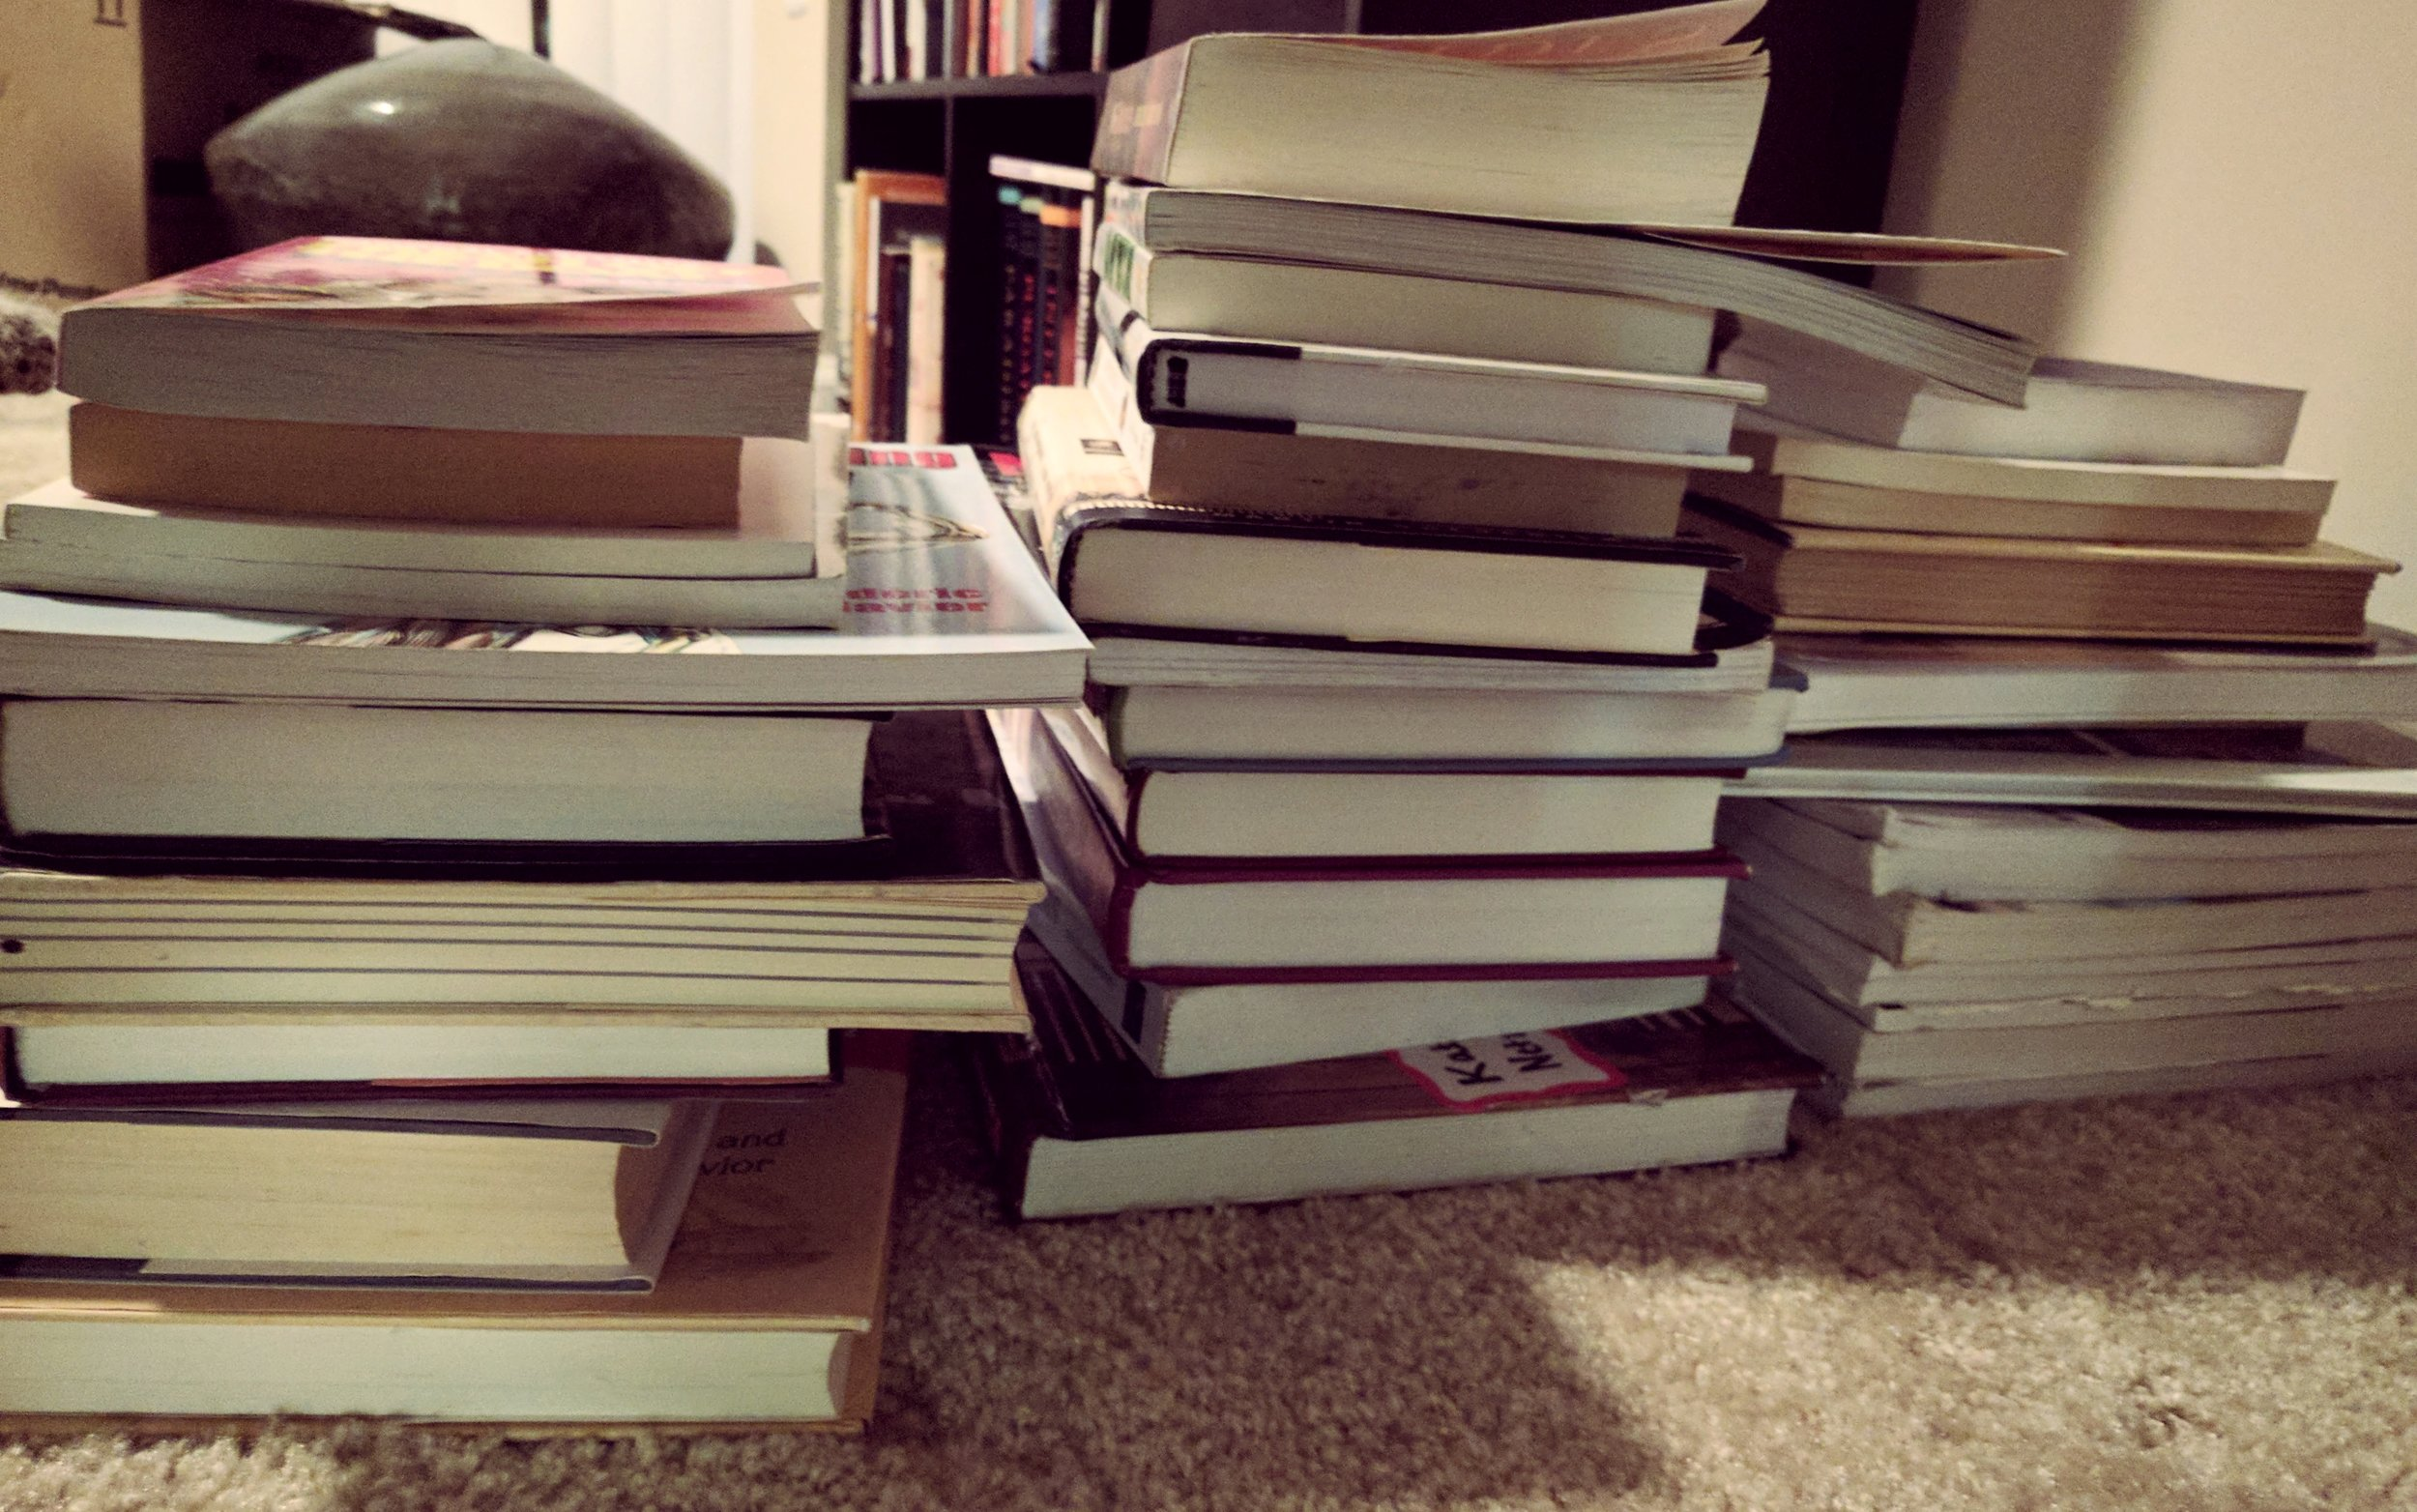 Writing this post actually inspired me to get rid of more books. From my own mouth to my own ears apparently!